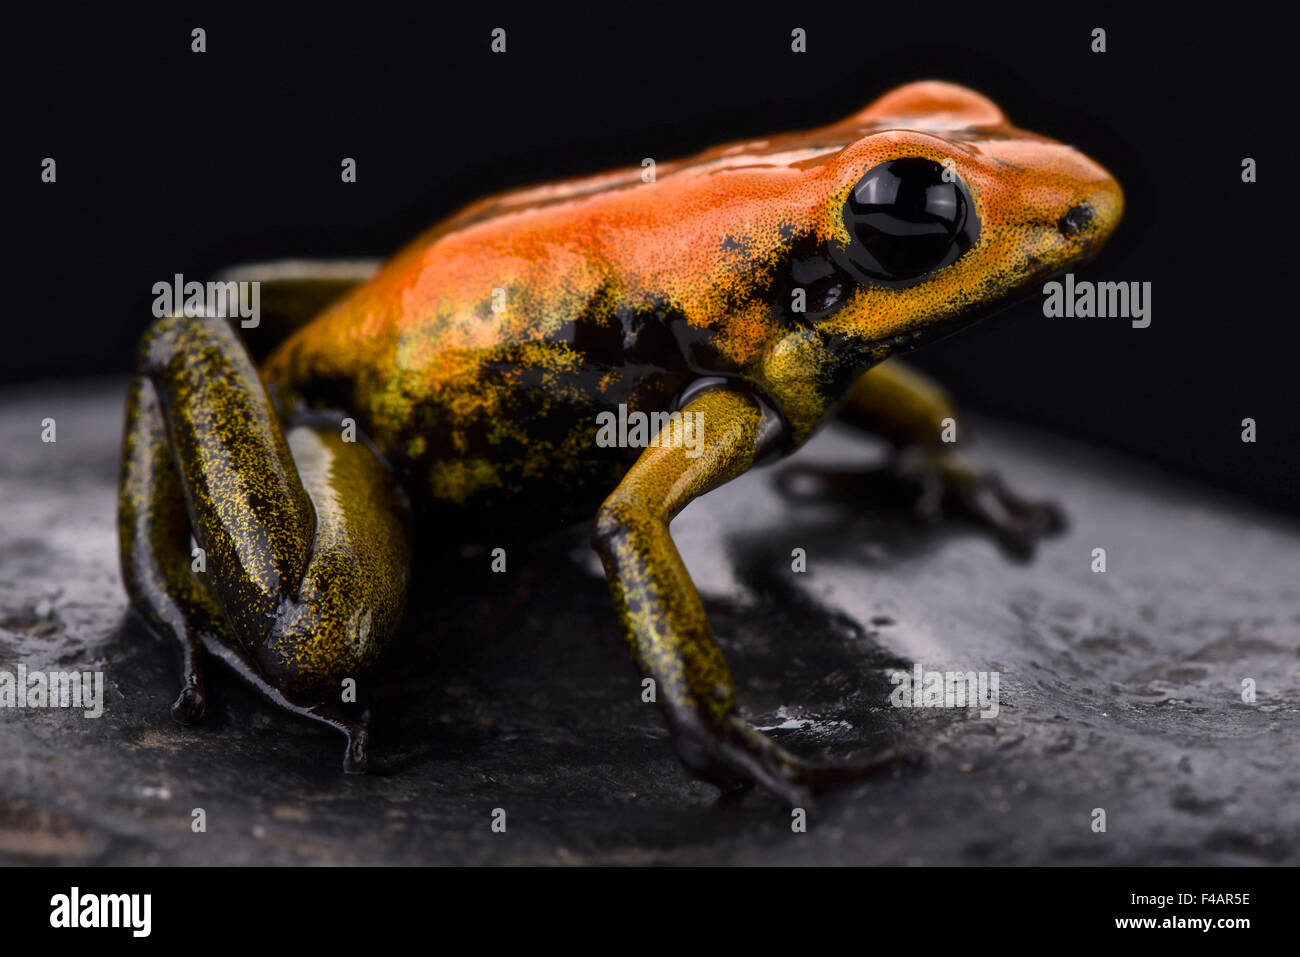 Bicolored dart frog (Phyllobates bicolor) Stock Photo